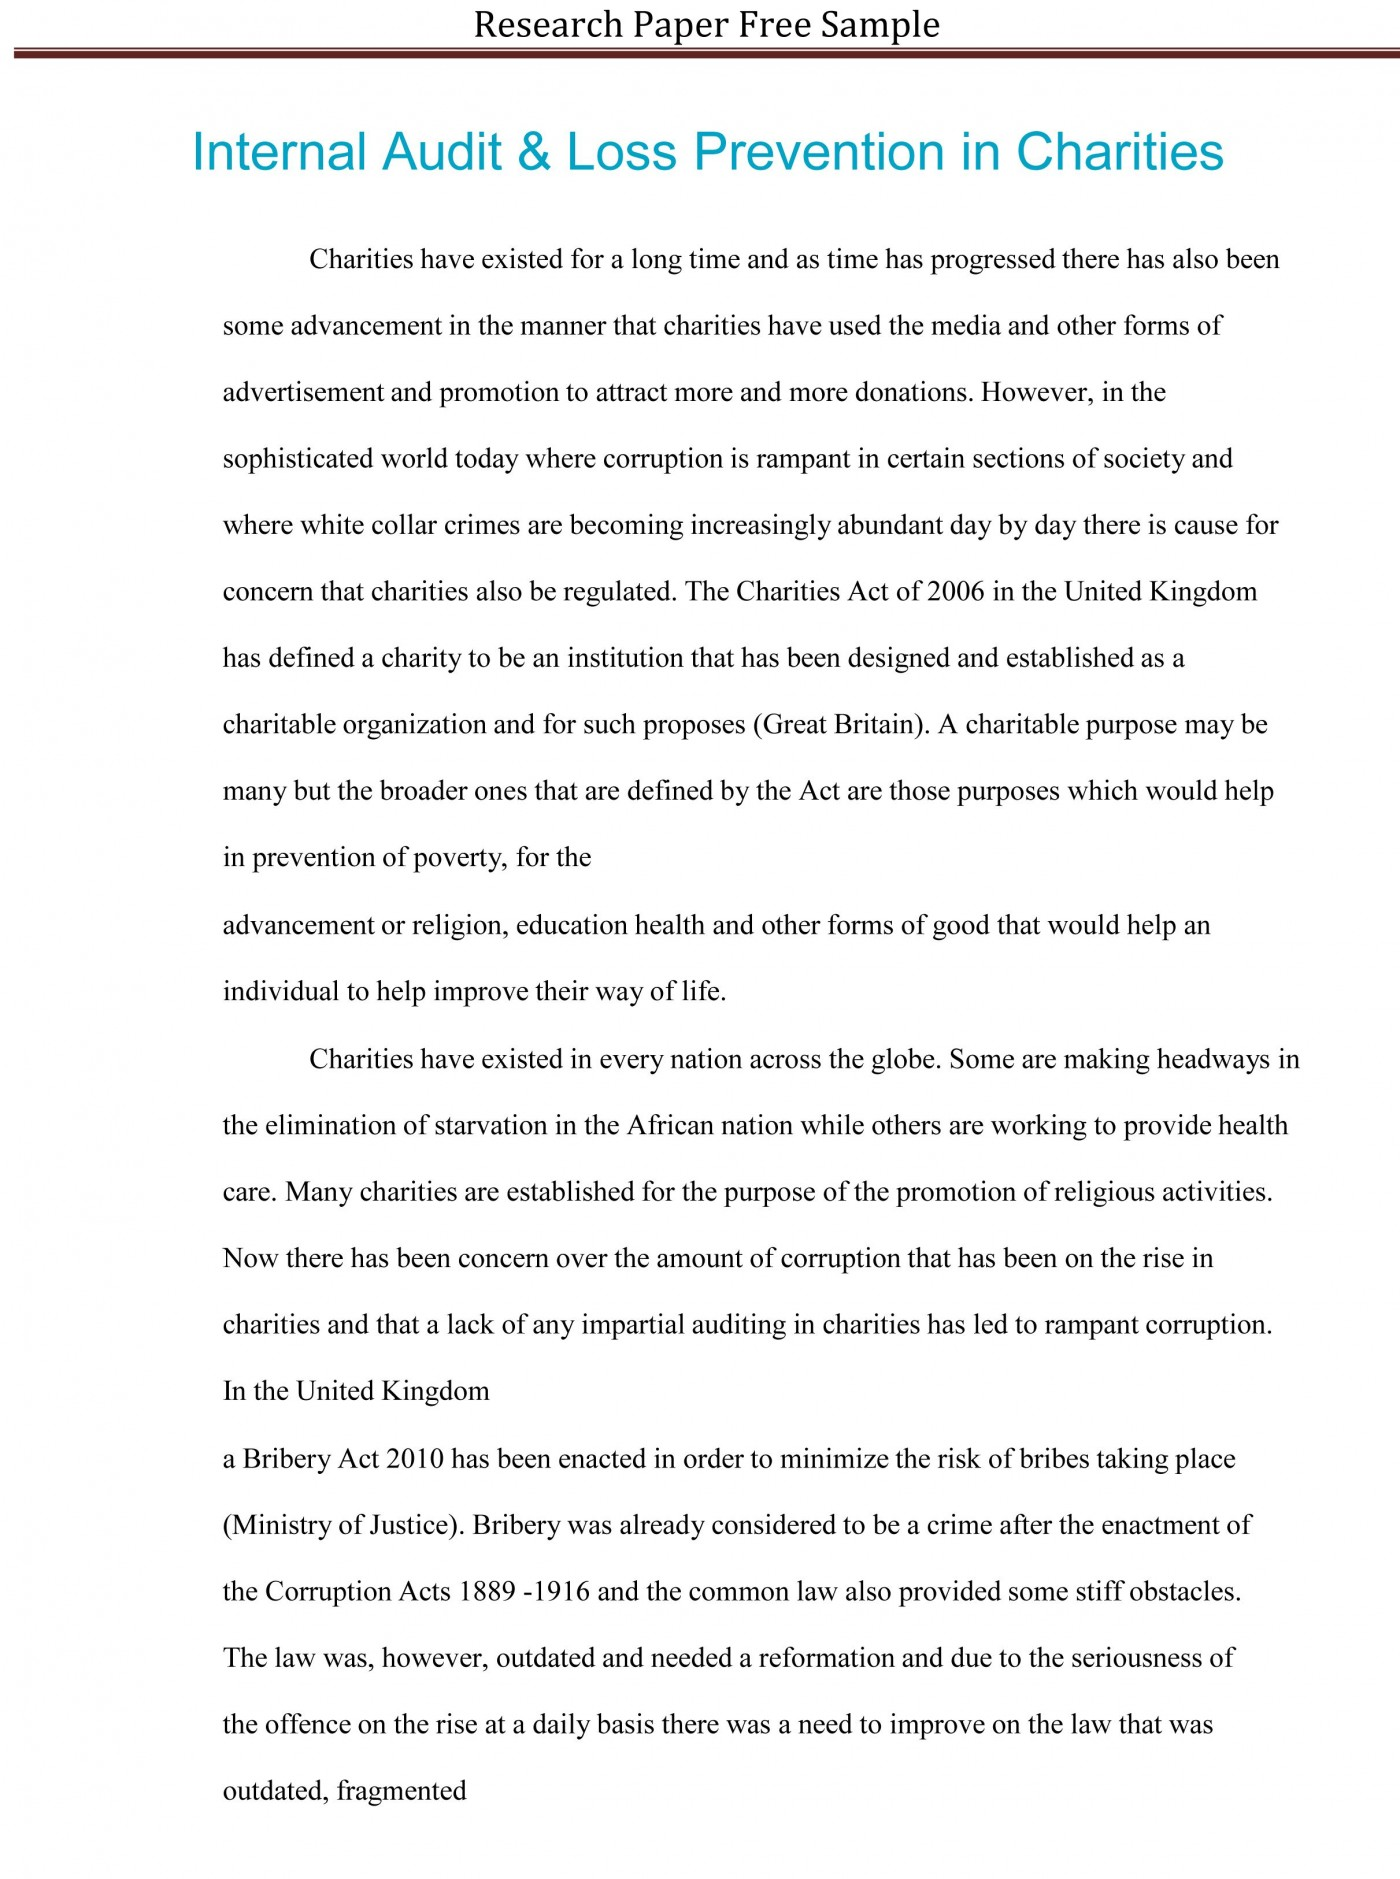 003 Research Paper Frightening Example Purdue Owl Outline Apa 1400